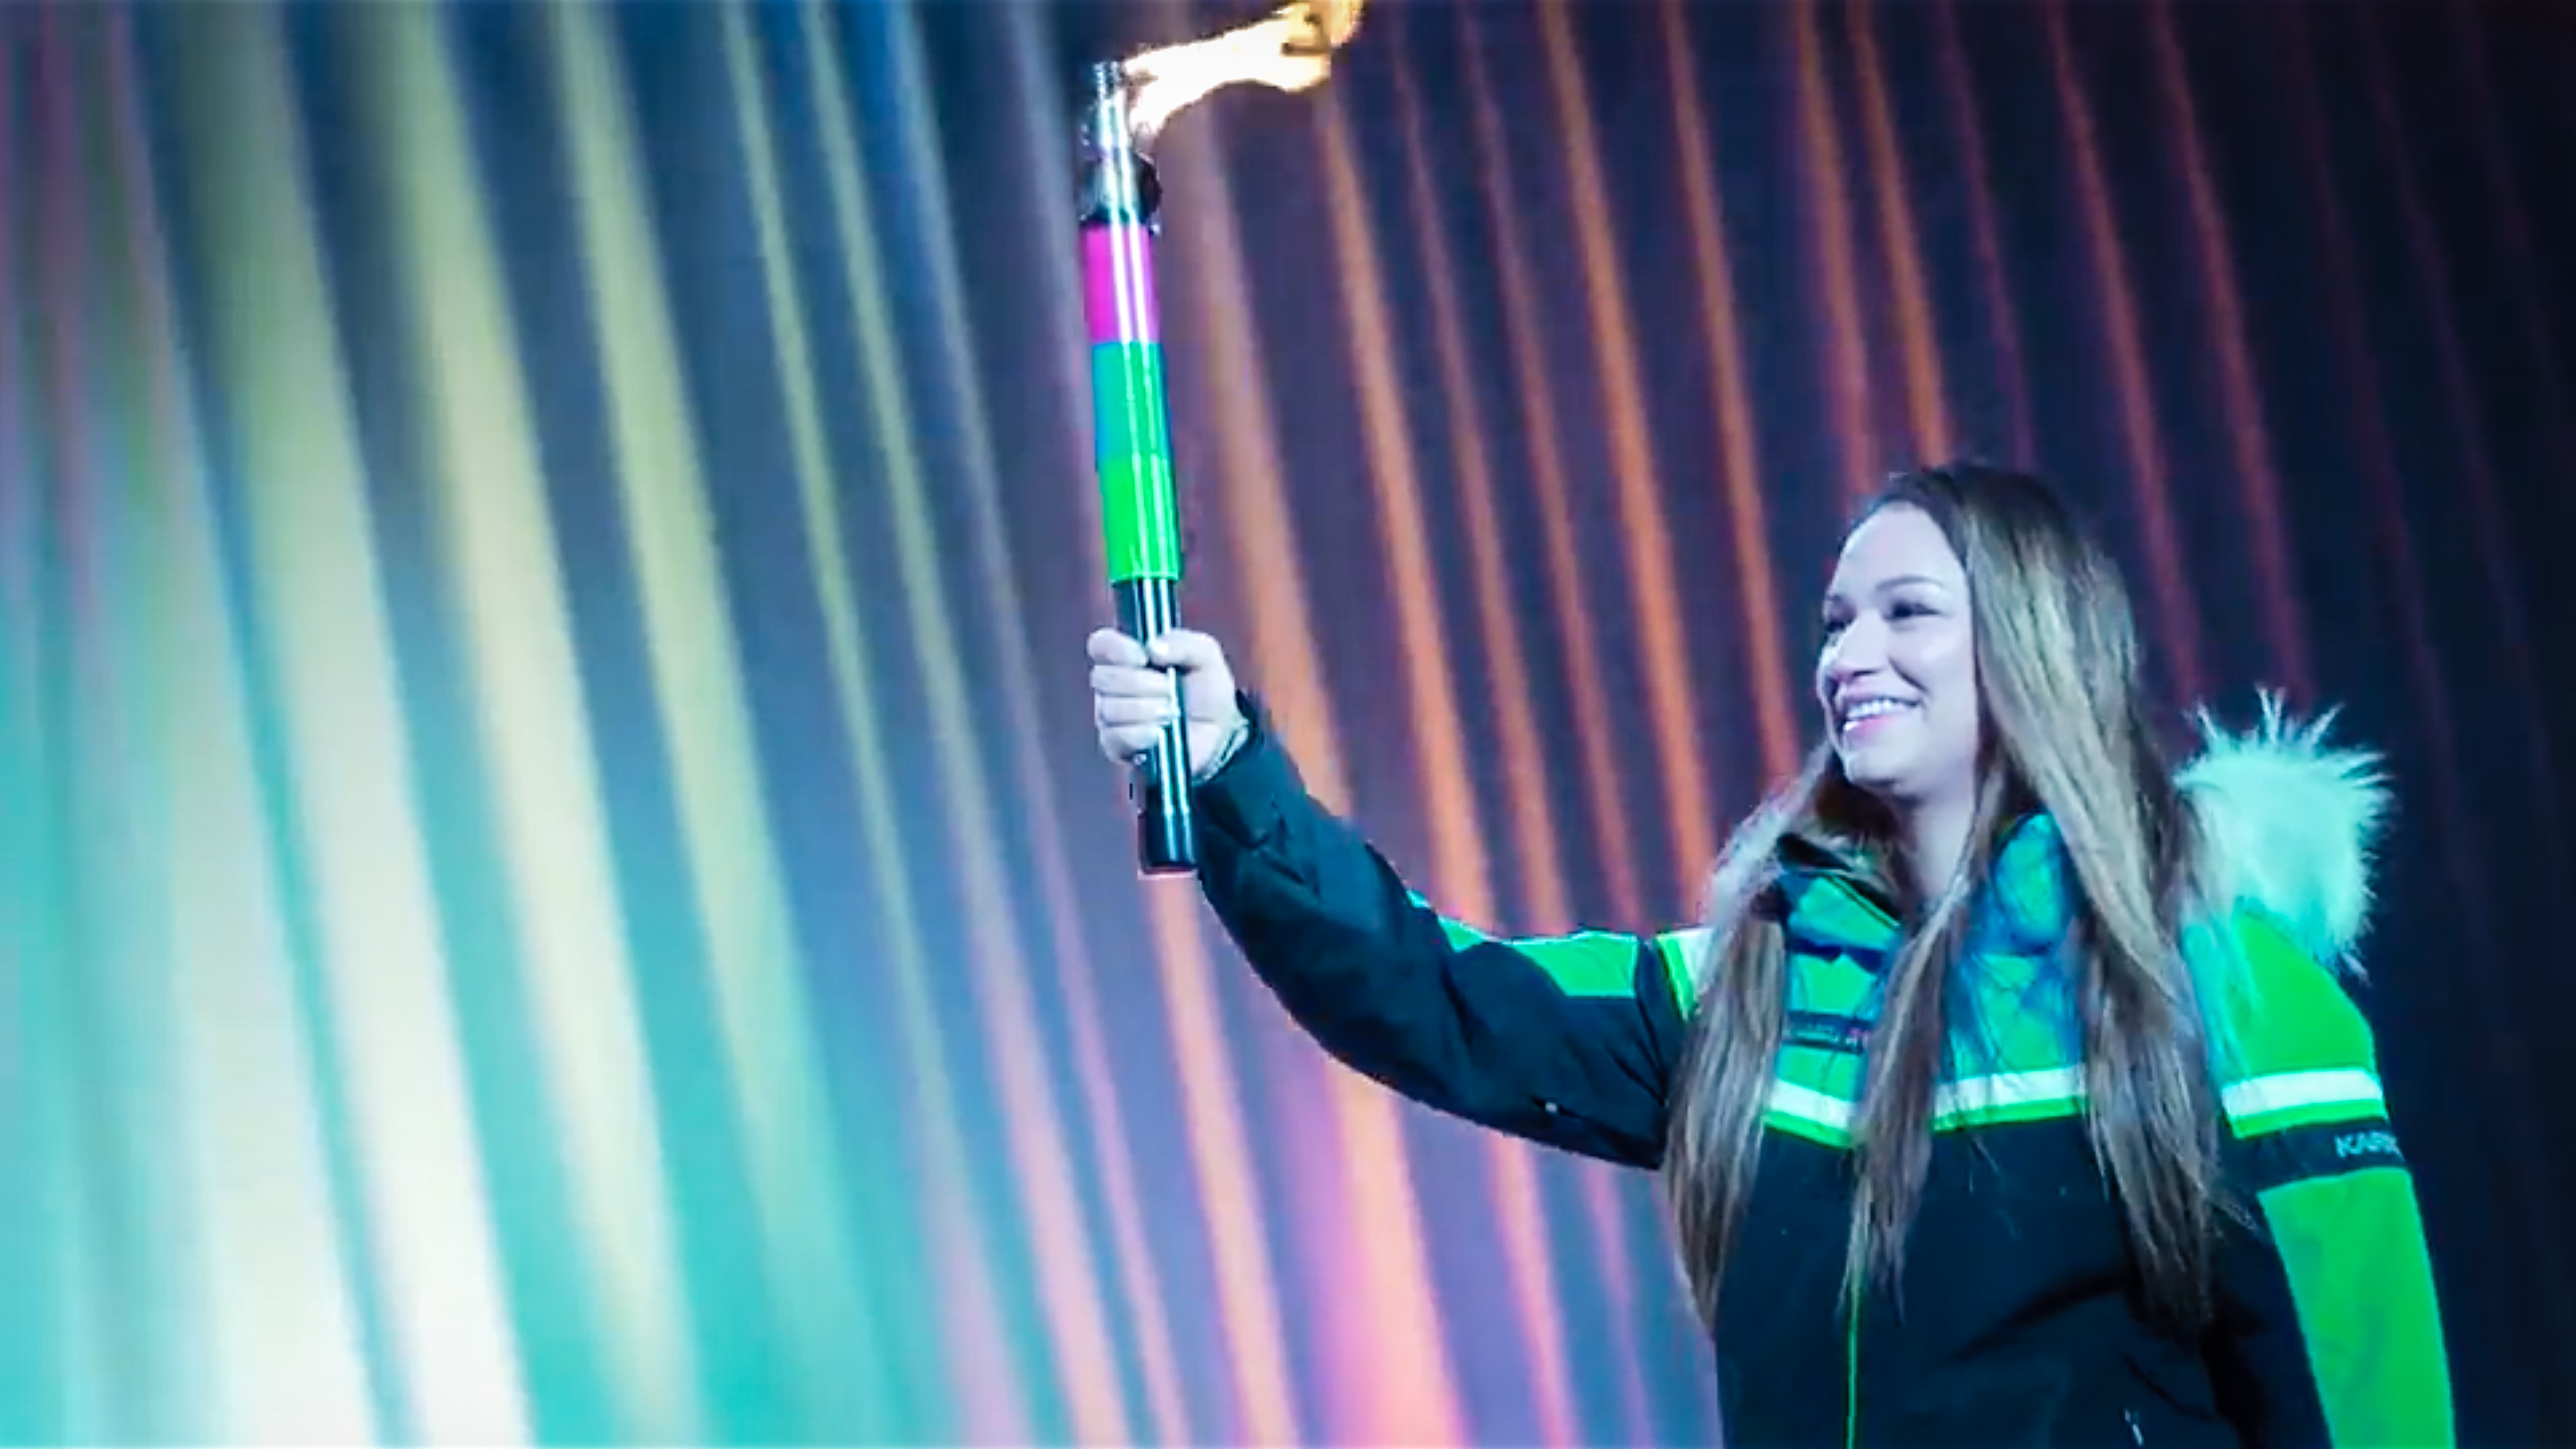 Arctic sports athlete Veronica MacDonald, from Fort Smith, carries the flame into the 2018 Arctic Winter Games opening ceremony - AWG